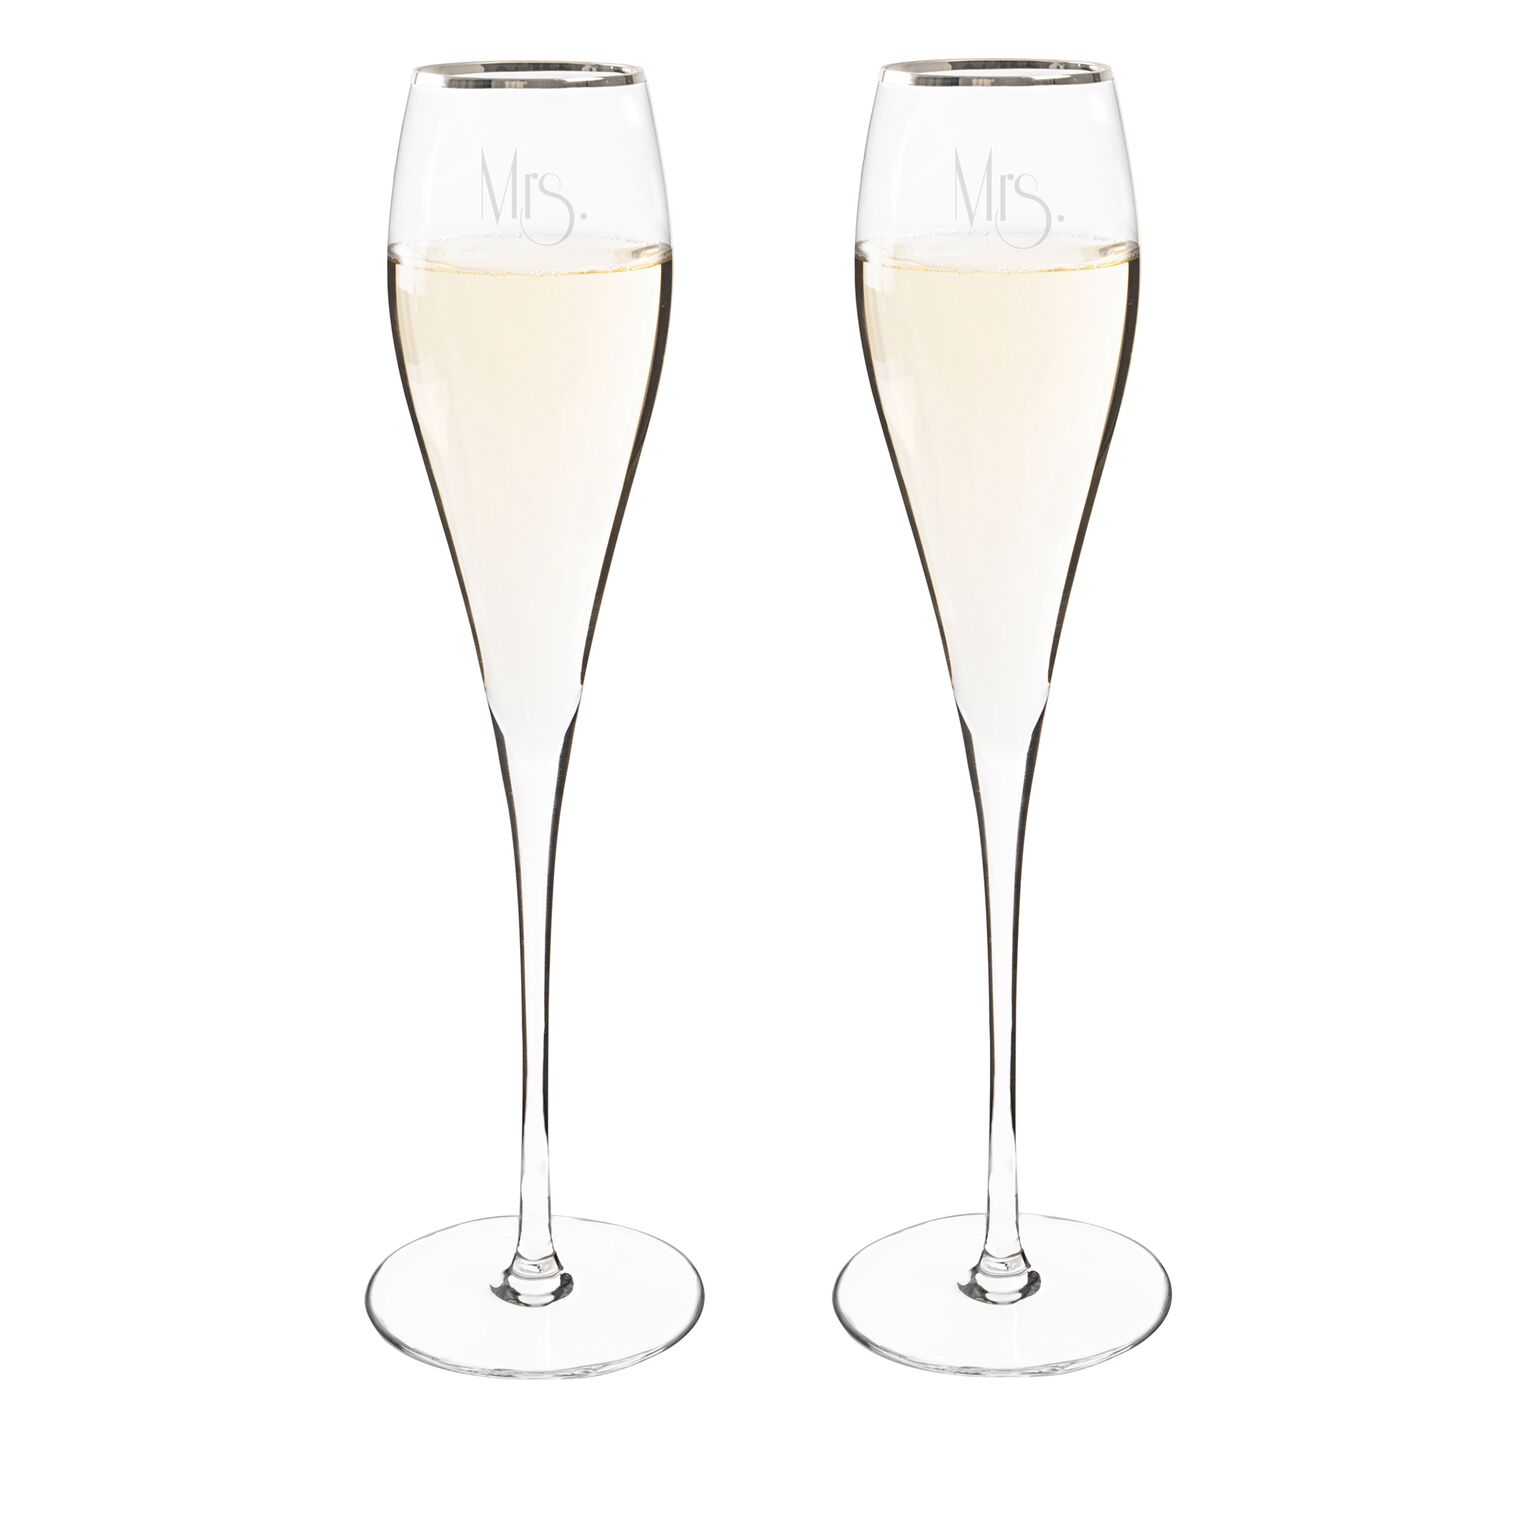 Cathys Concepts GMRS-3670S Mrs. & Mrs. Gatsby 7 oz. Silver Rim Champagne Flutes Set of 2